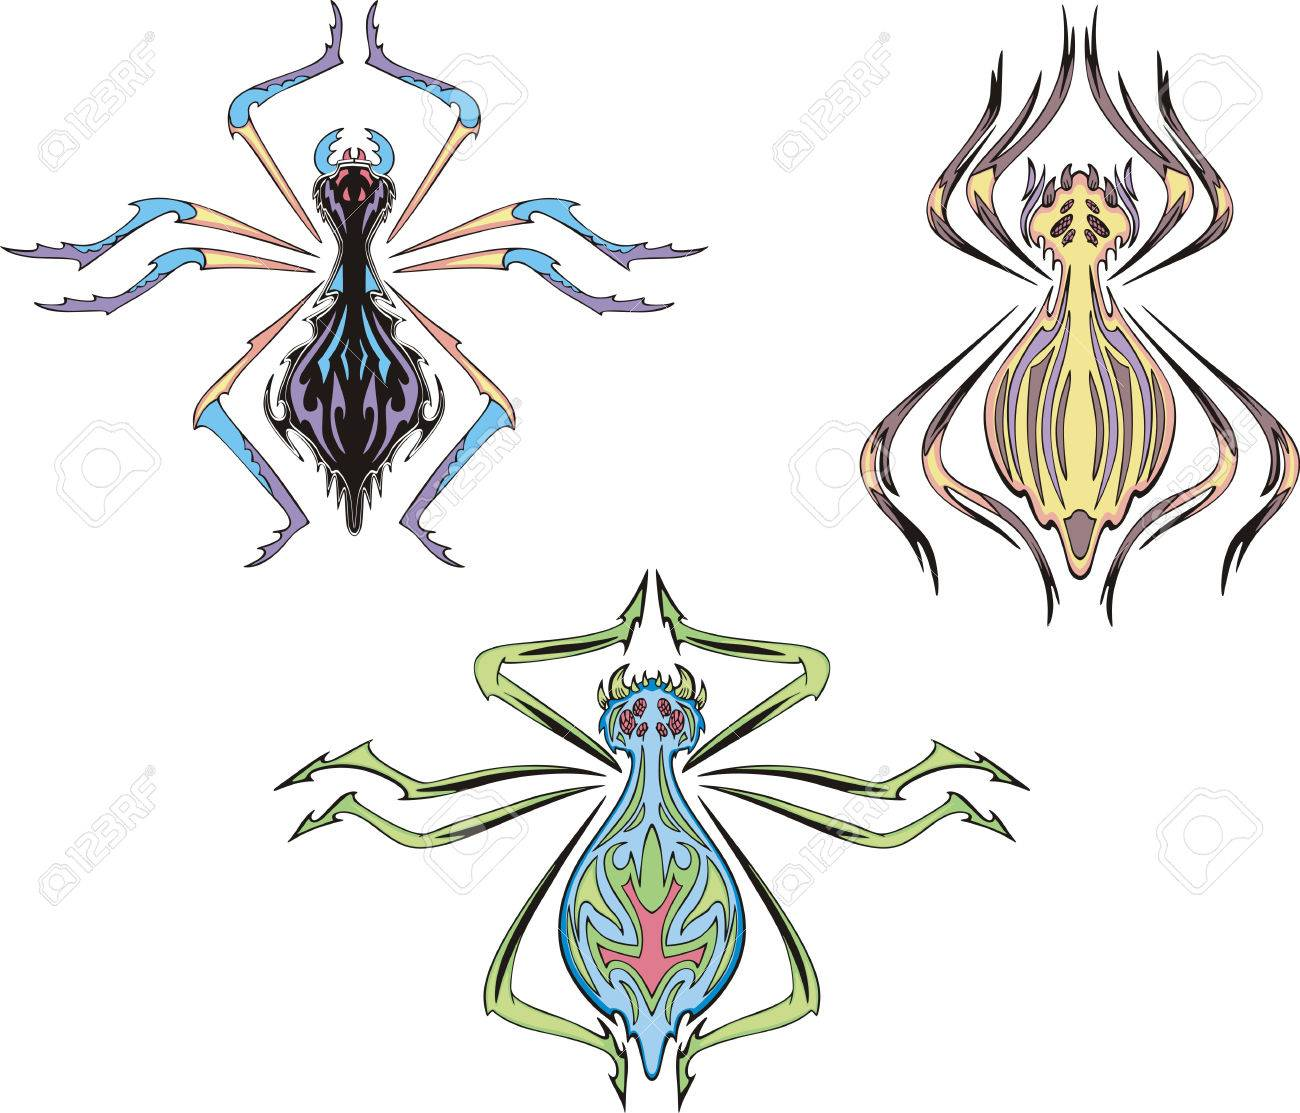 Symmetrical spider tattoos. Set of color vector illustrations. Stock Vector - 22323276